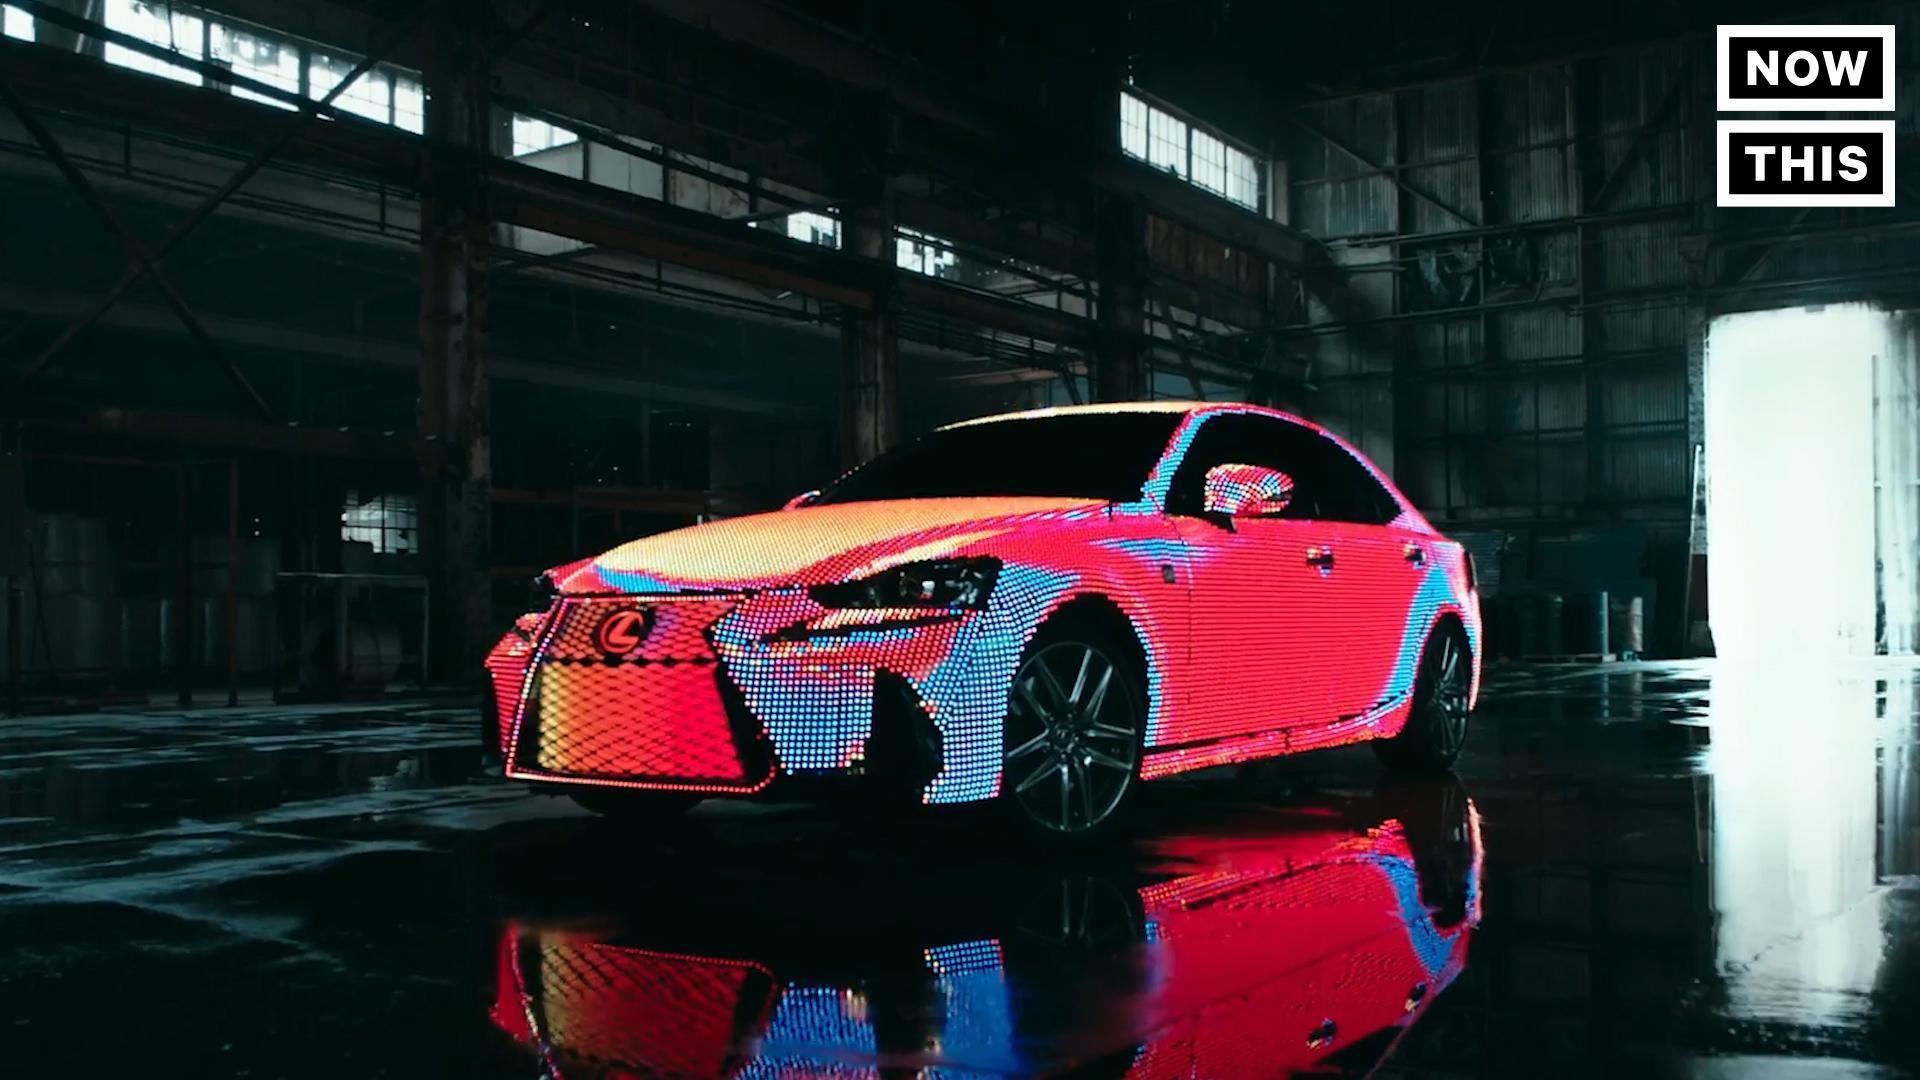 This Lexus Is Covered In 41,999 LED Lights